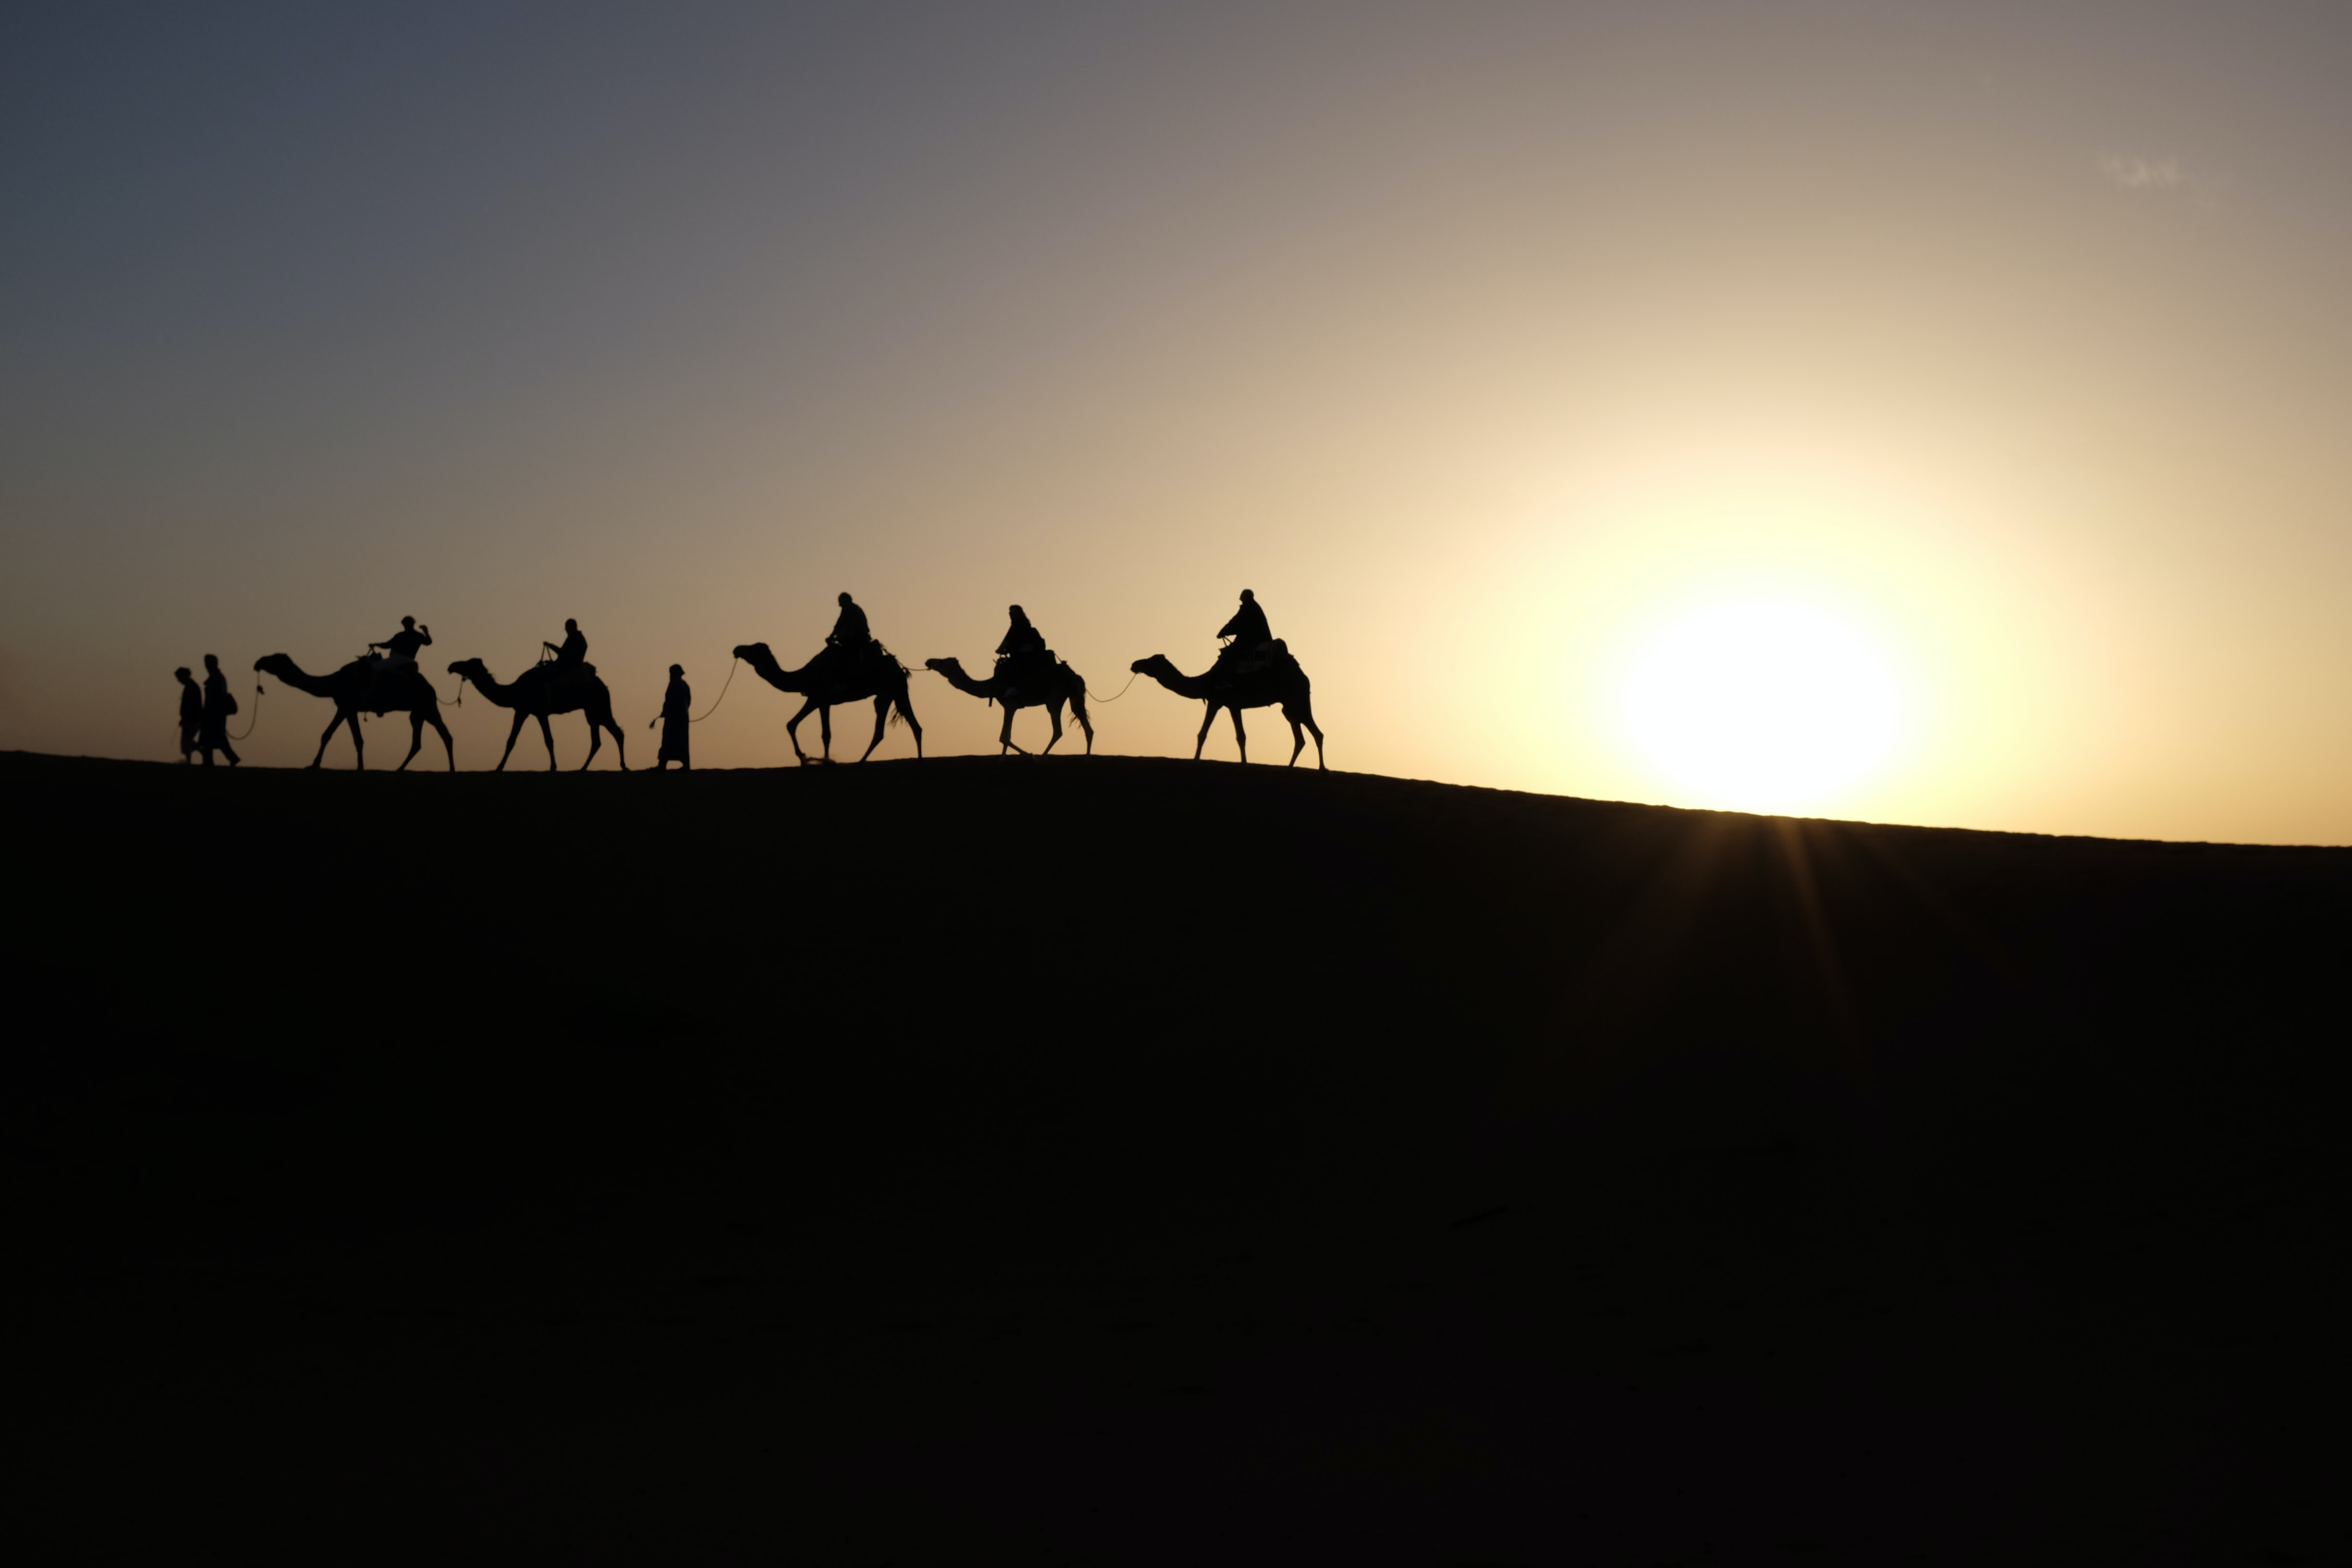 silhouette of people riding on camels